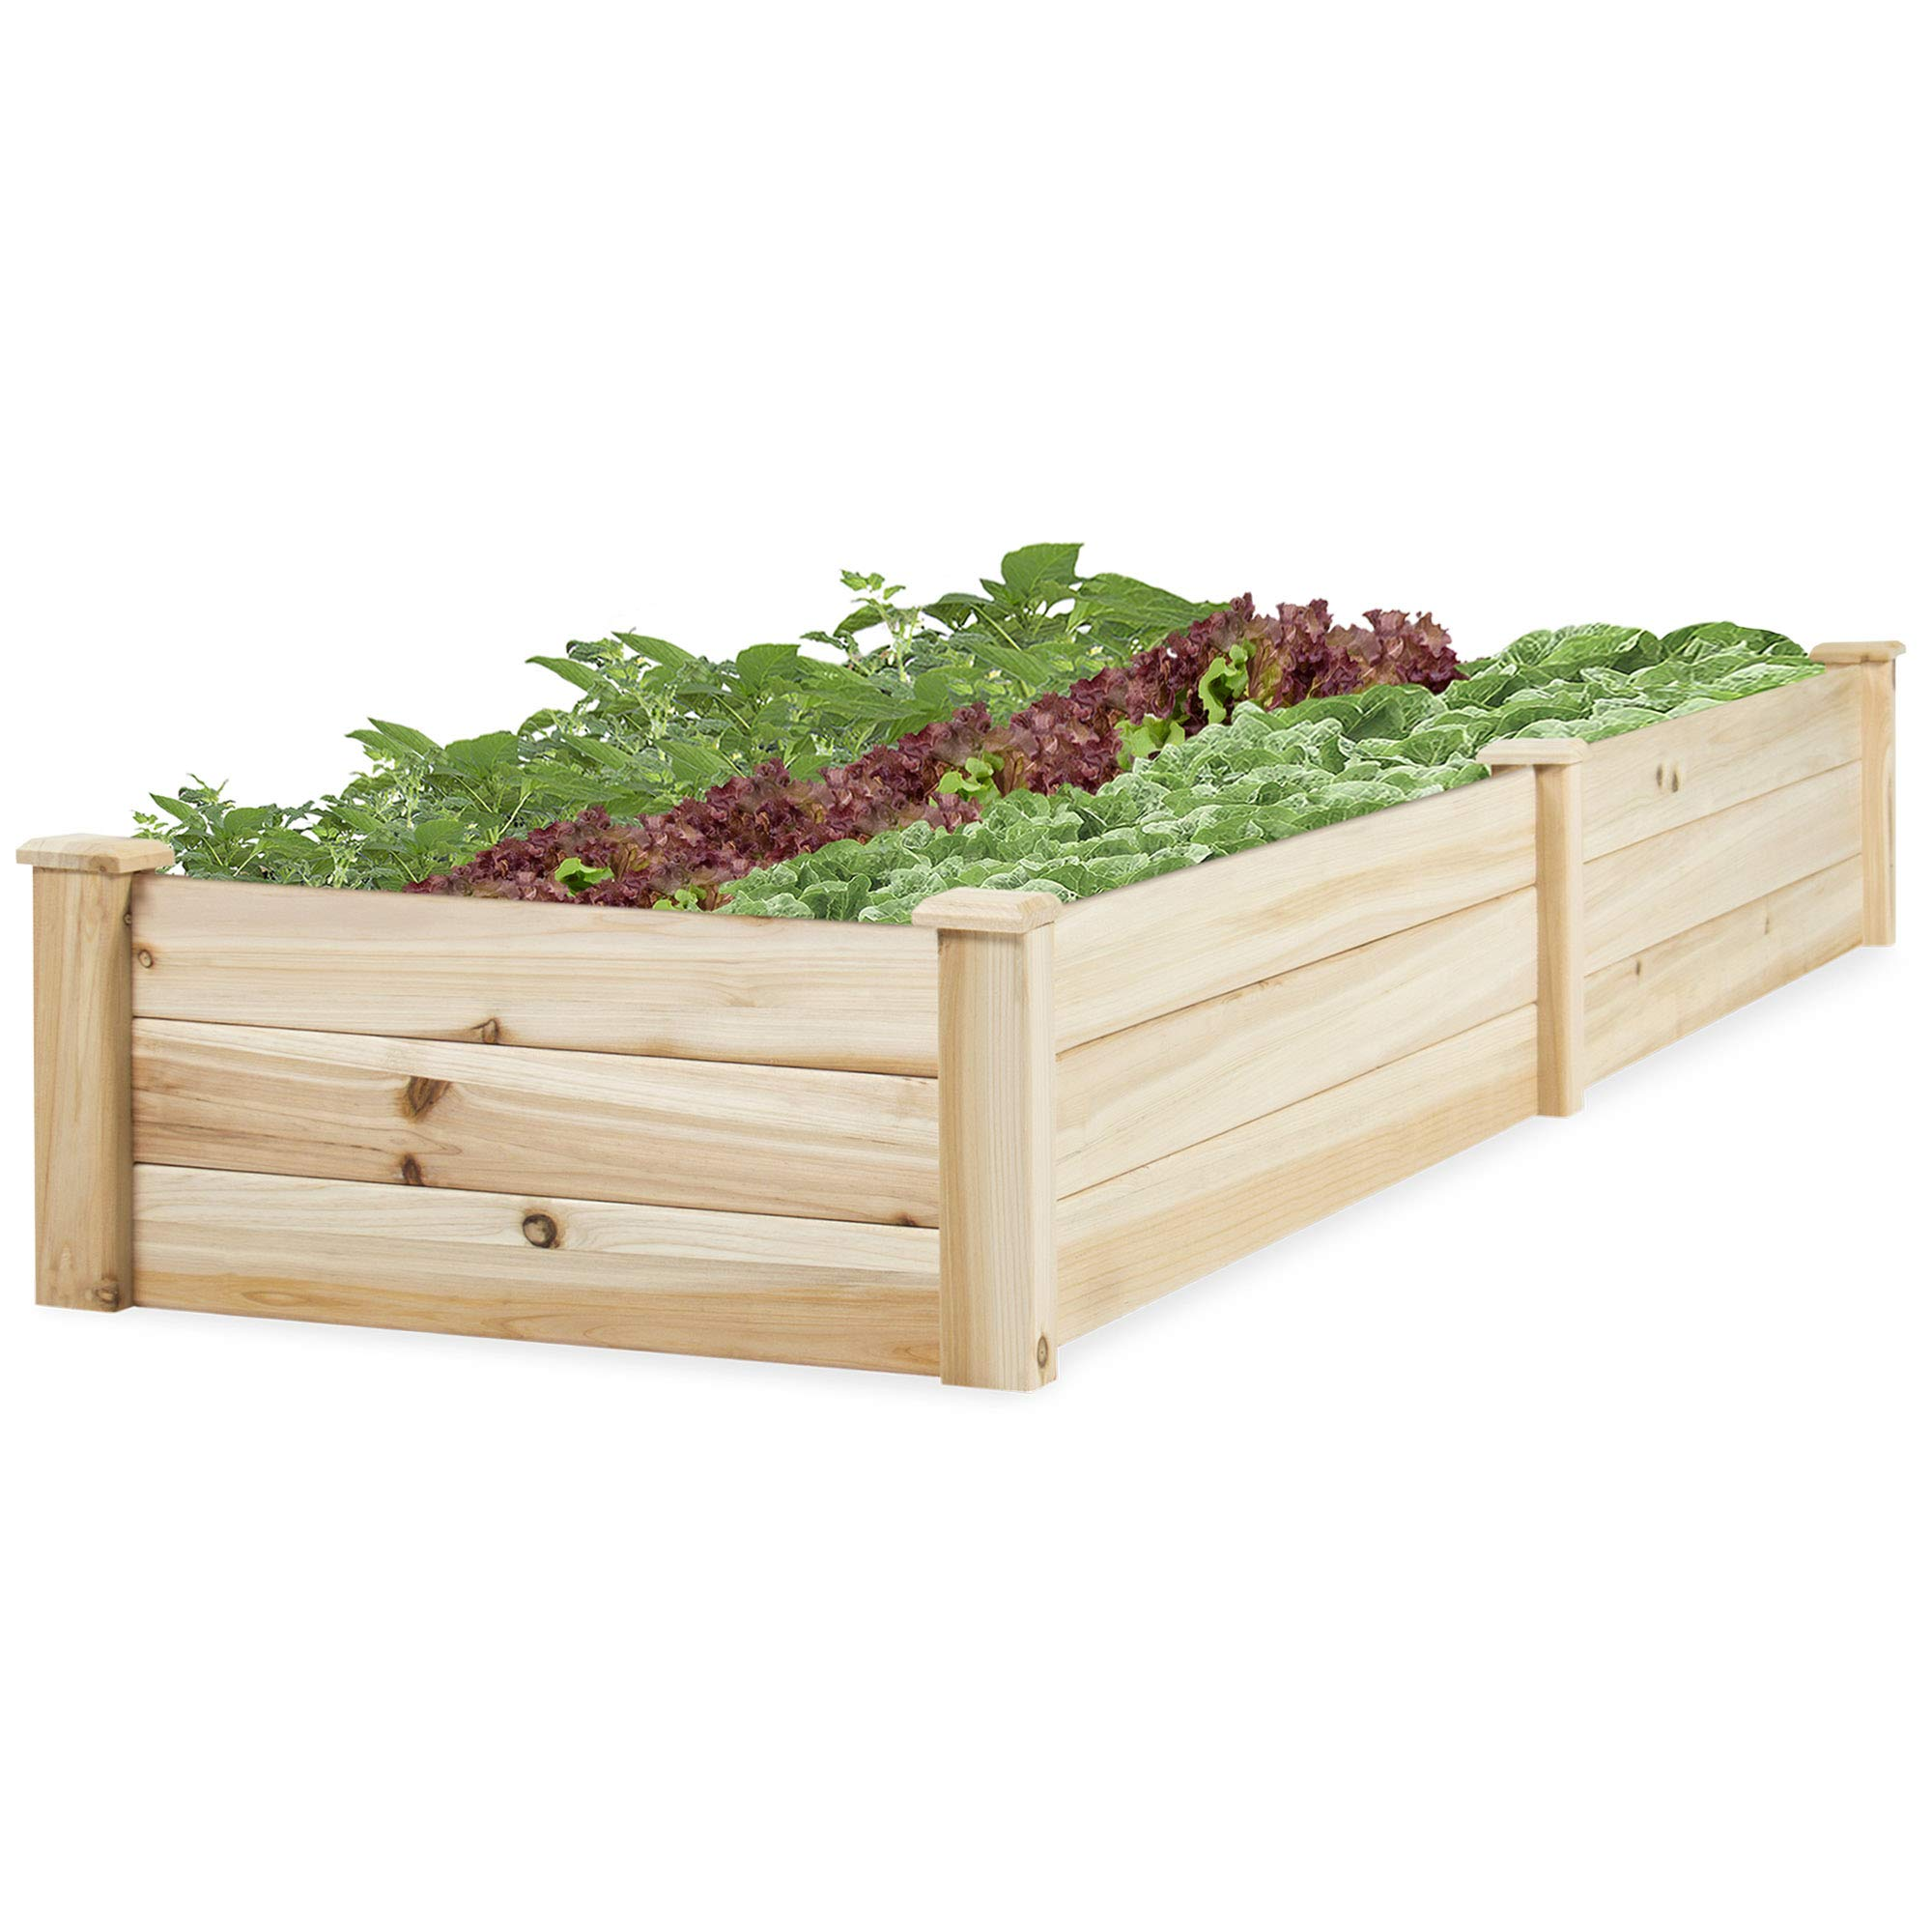 Best Choice Products Vegetable Raised Garden Bed Patio Backyard Grow Flowers Elevated Planter by Best Choice Products